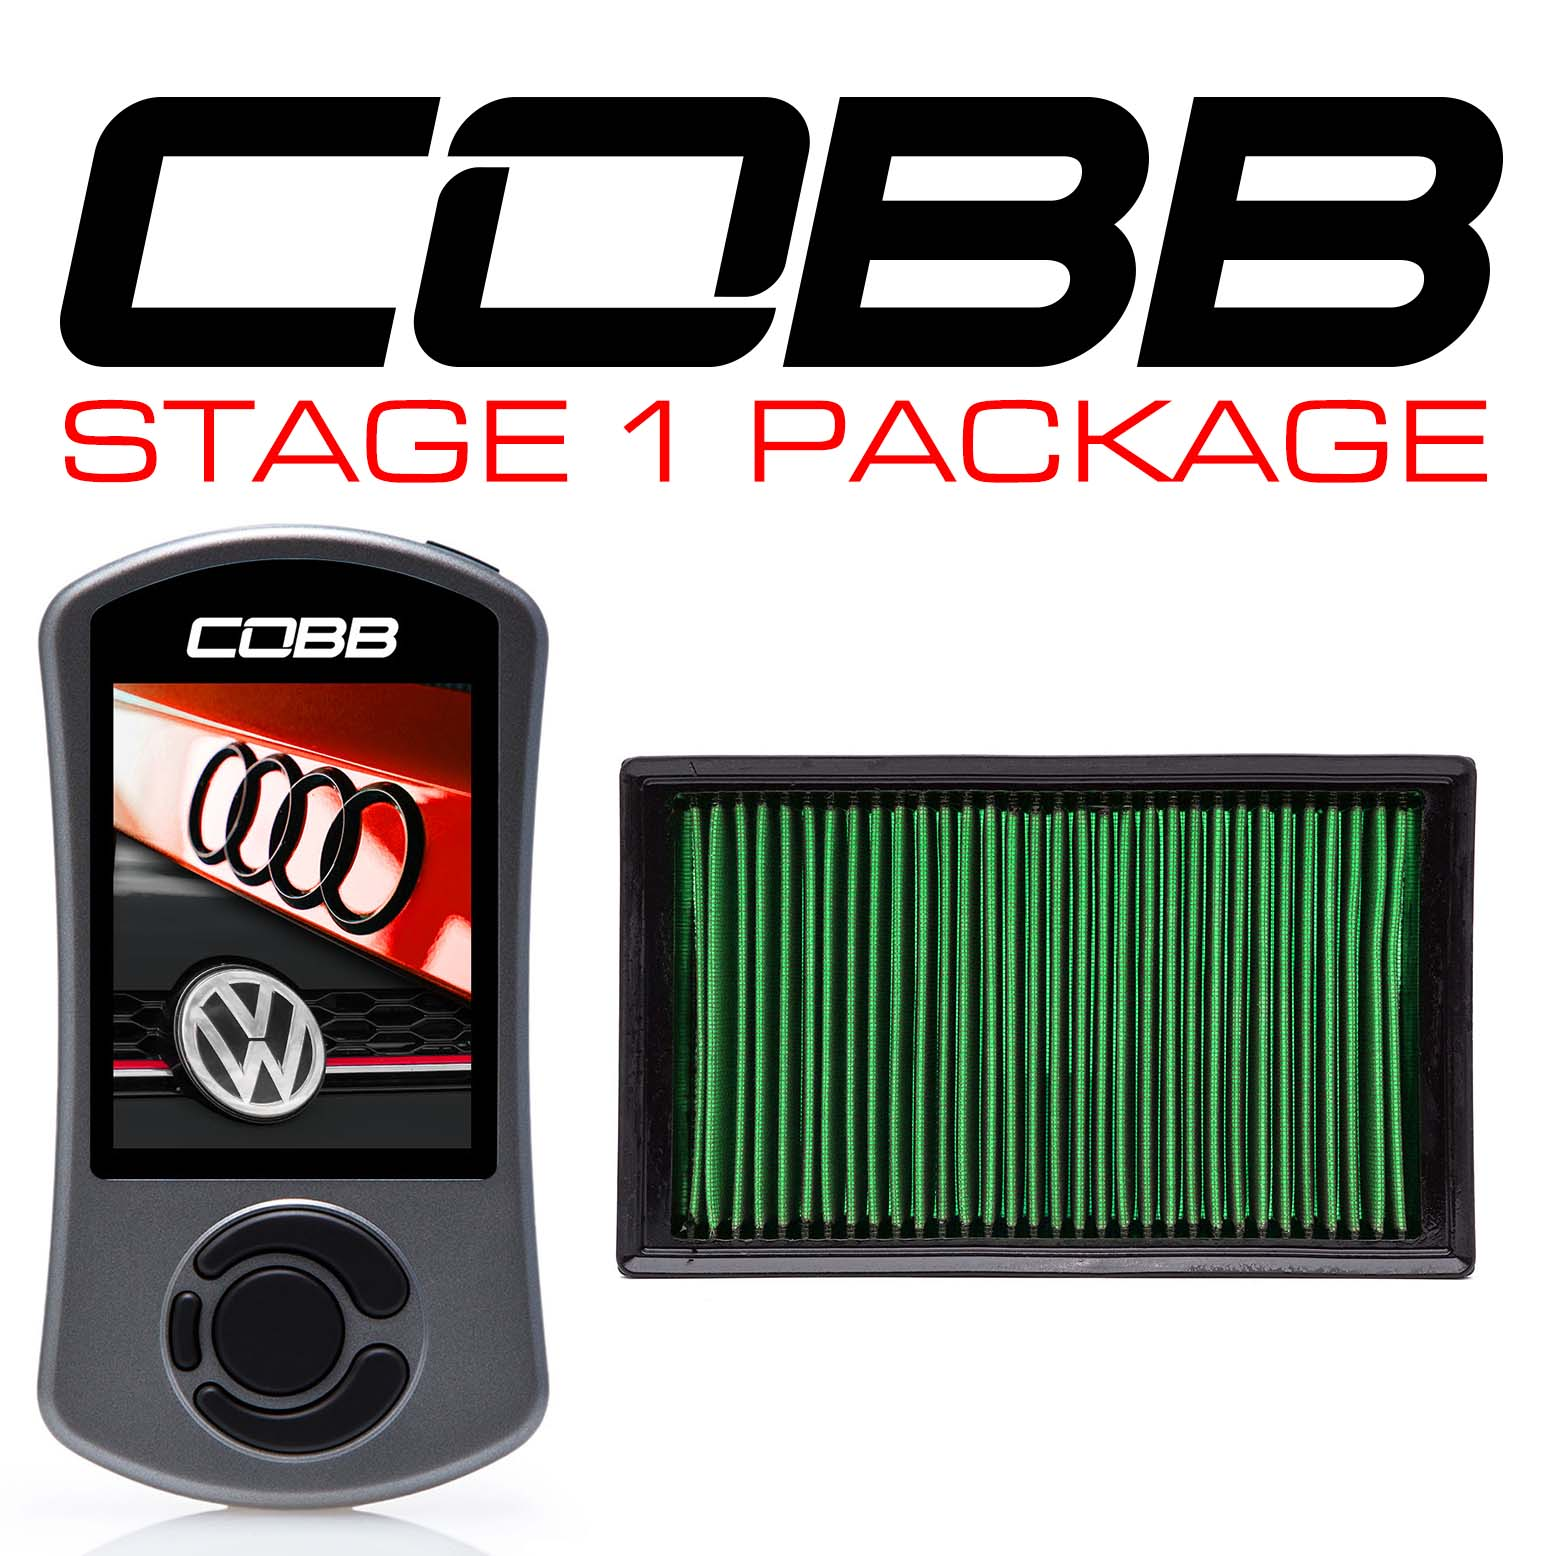 Stage 1 Power Package for Volkswagen (Mk7/Mk7.5) GTI, Jetta (A7) GLI, Audi A3 (8V)